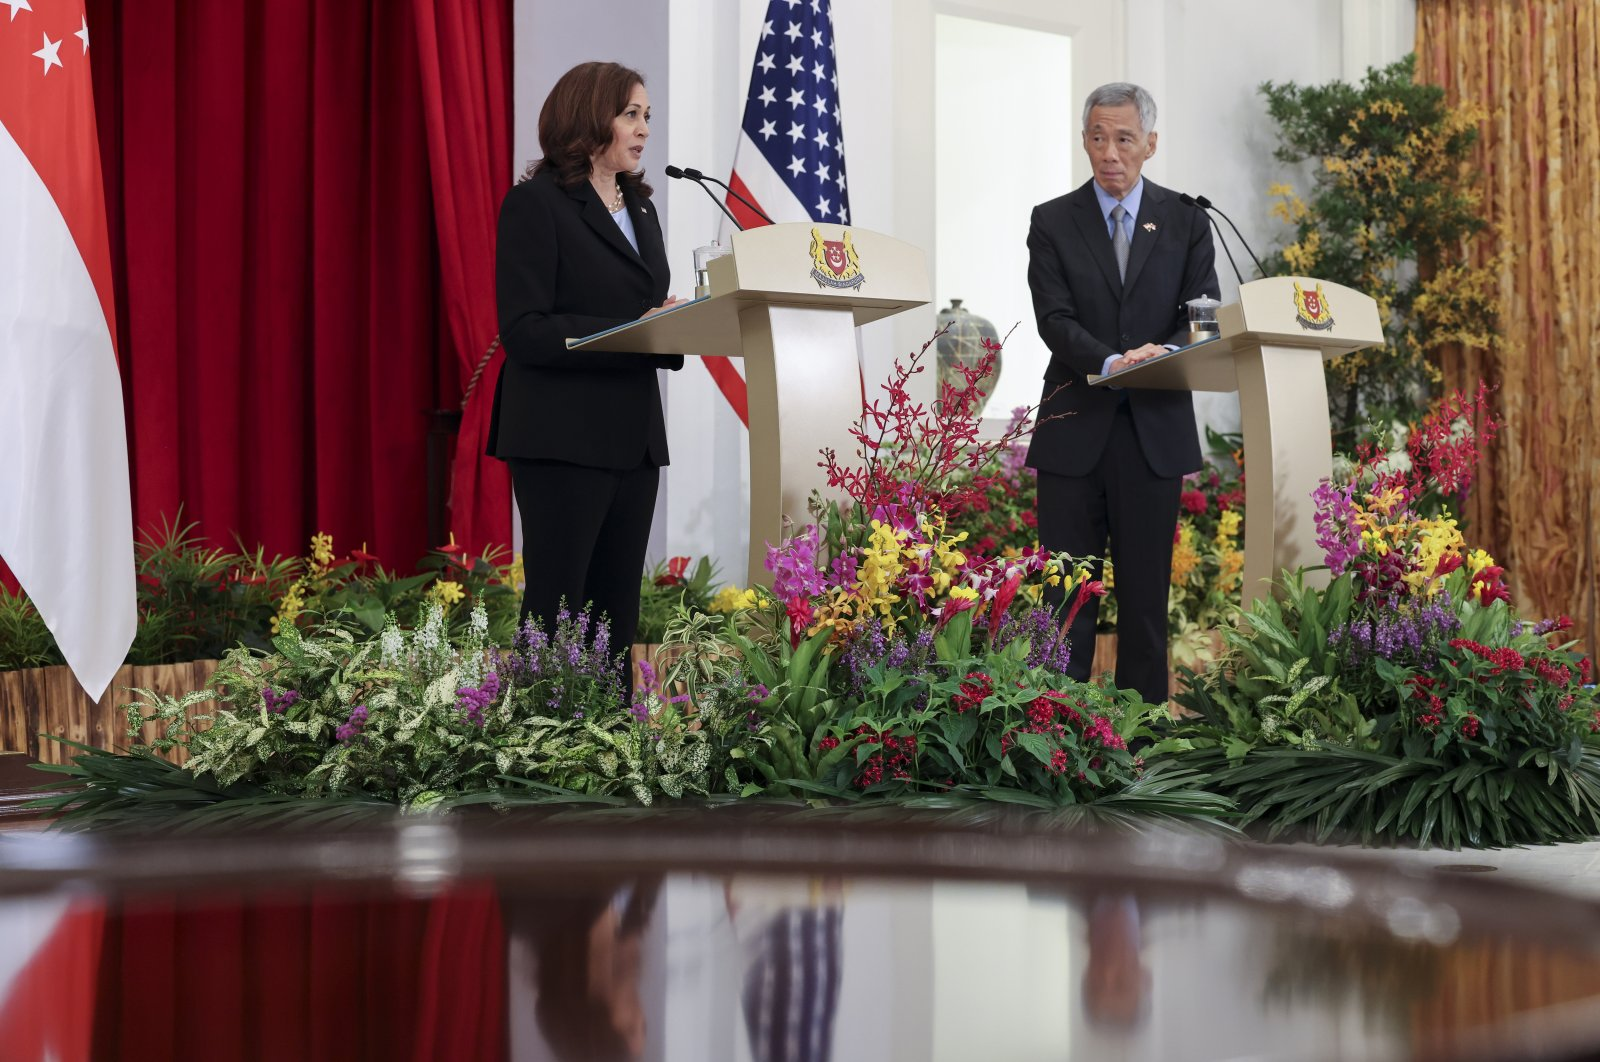 U.S. Vice President Kamala Harris (L) and Singapore's Prime Minister Lee Hsien Loong hold a joint news conference in Singapore, Aug. 23, 2021. (AP Photo)